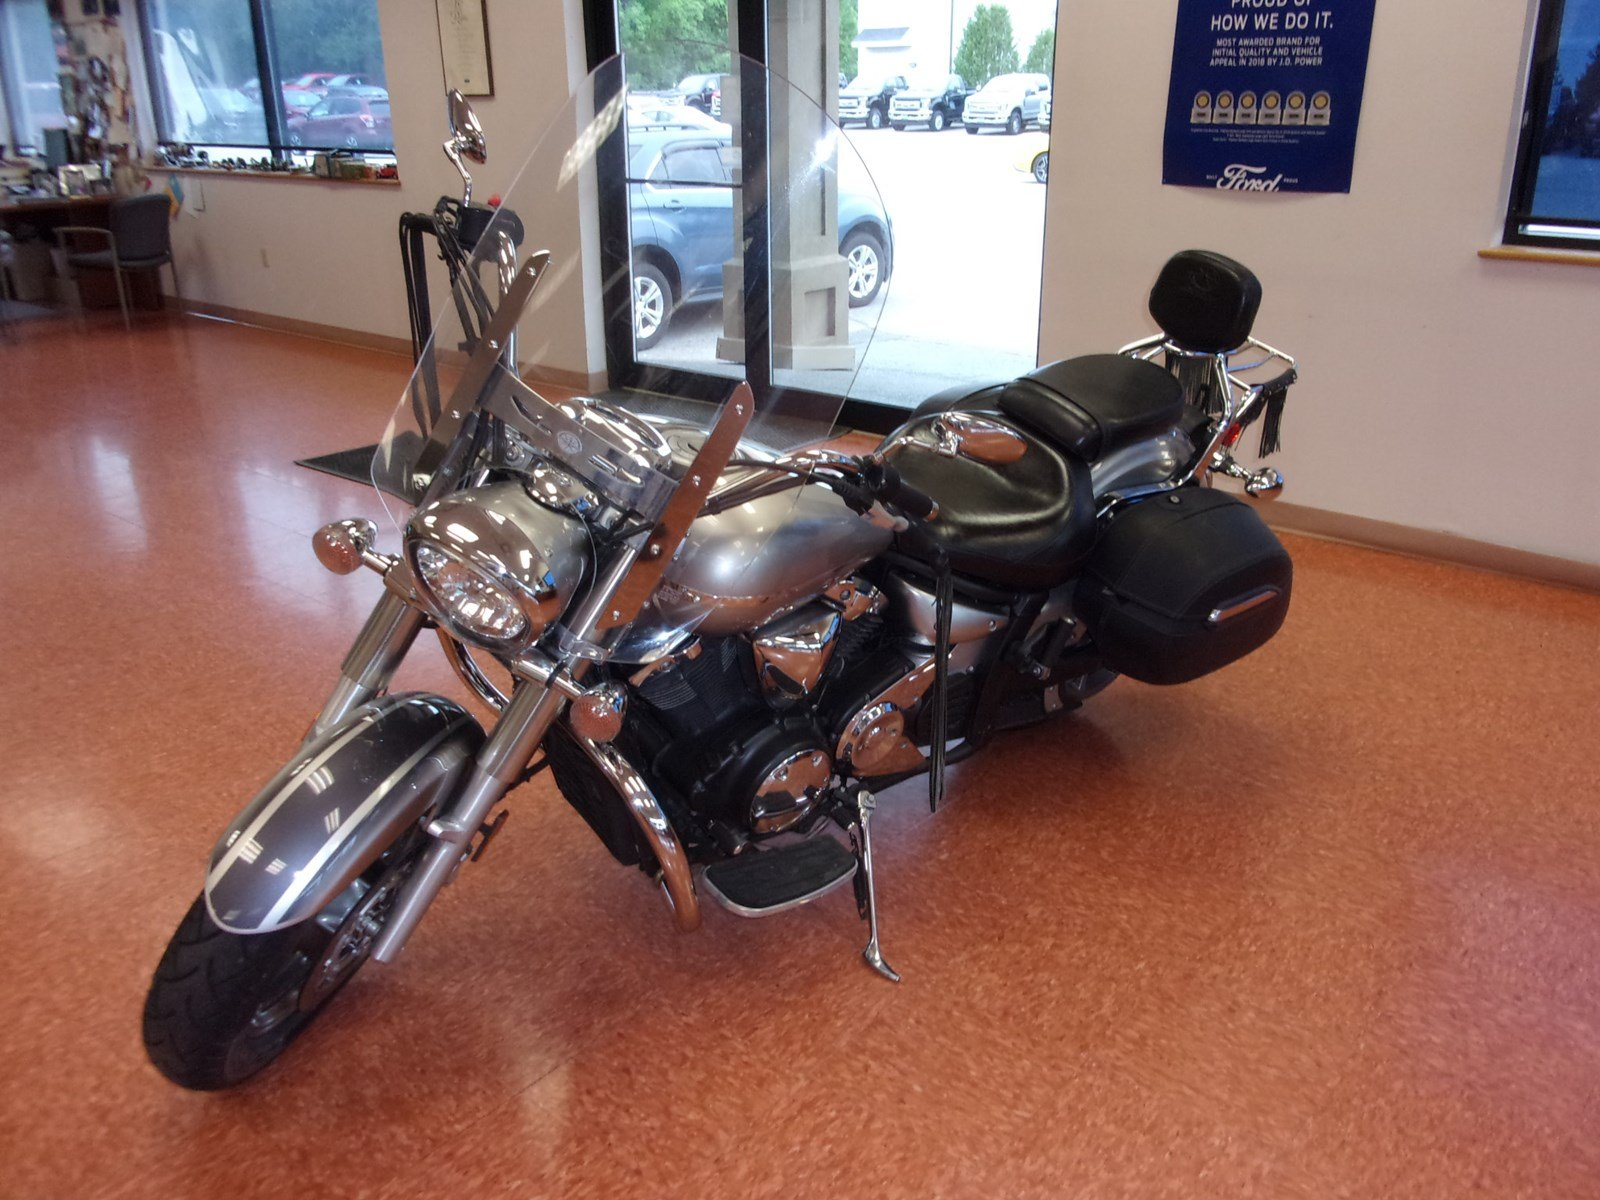 Pre-Owned 2006 YAMAHA 1300